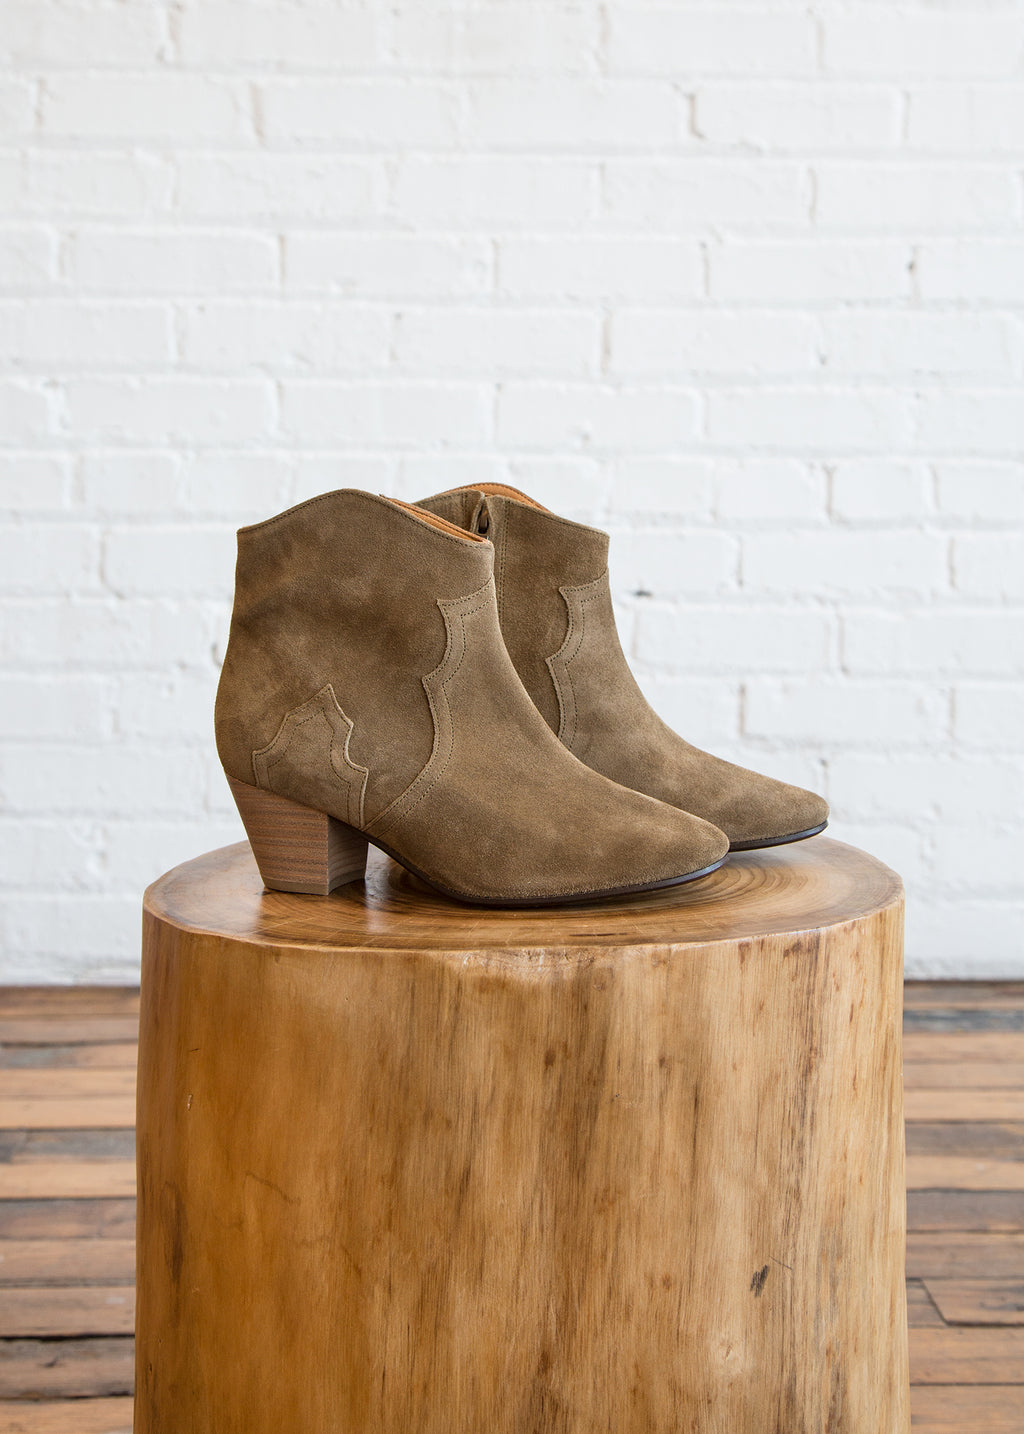 Isabel Marant Etoile Dicker Boot Brown $224